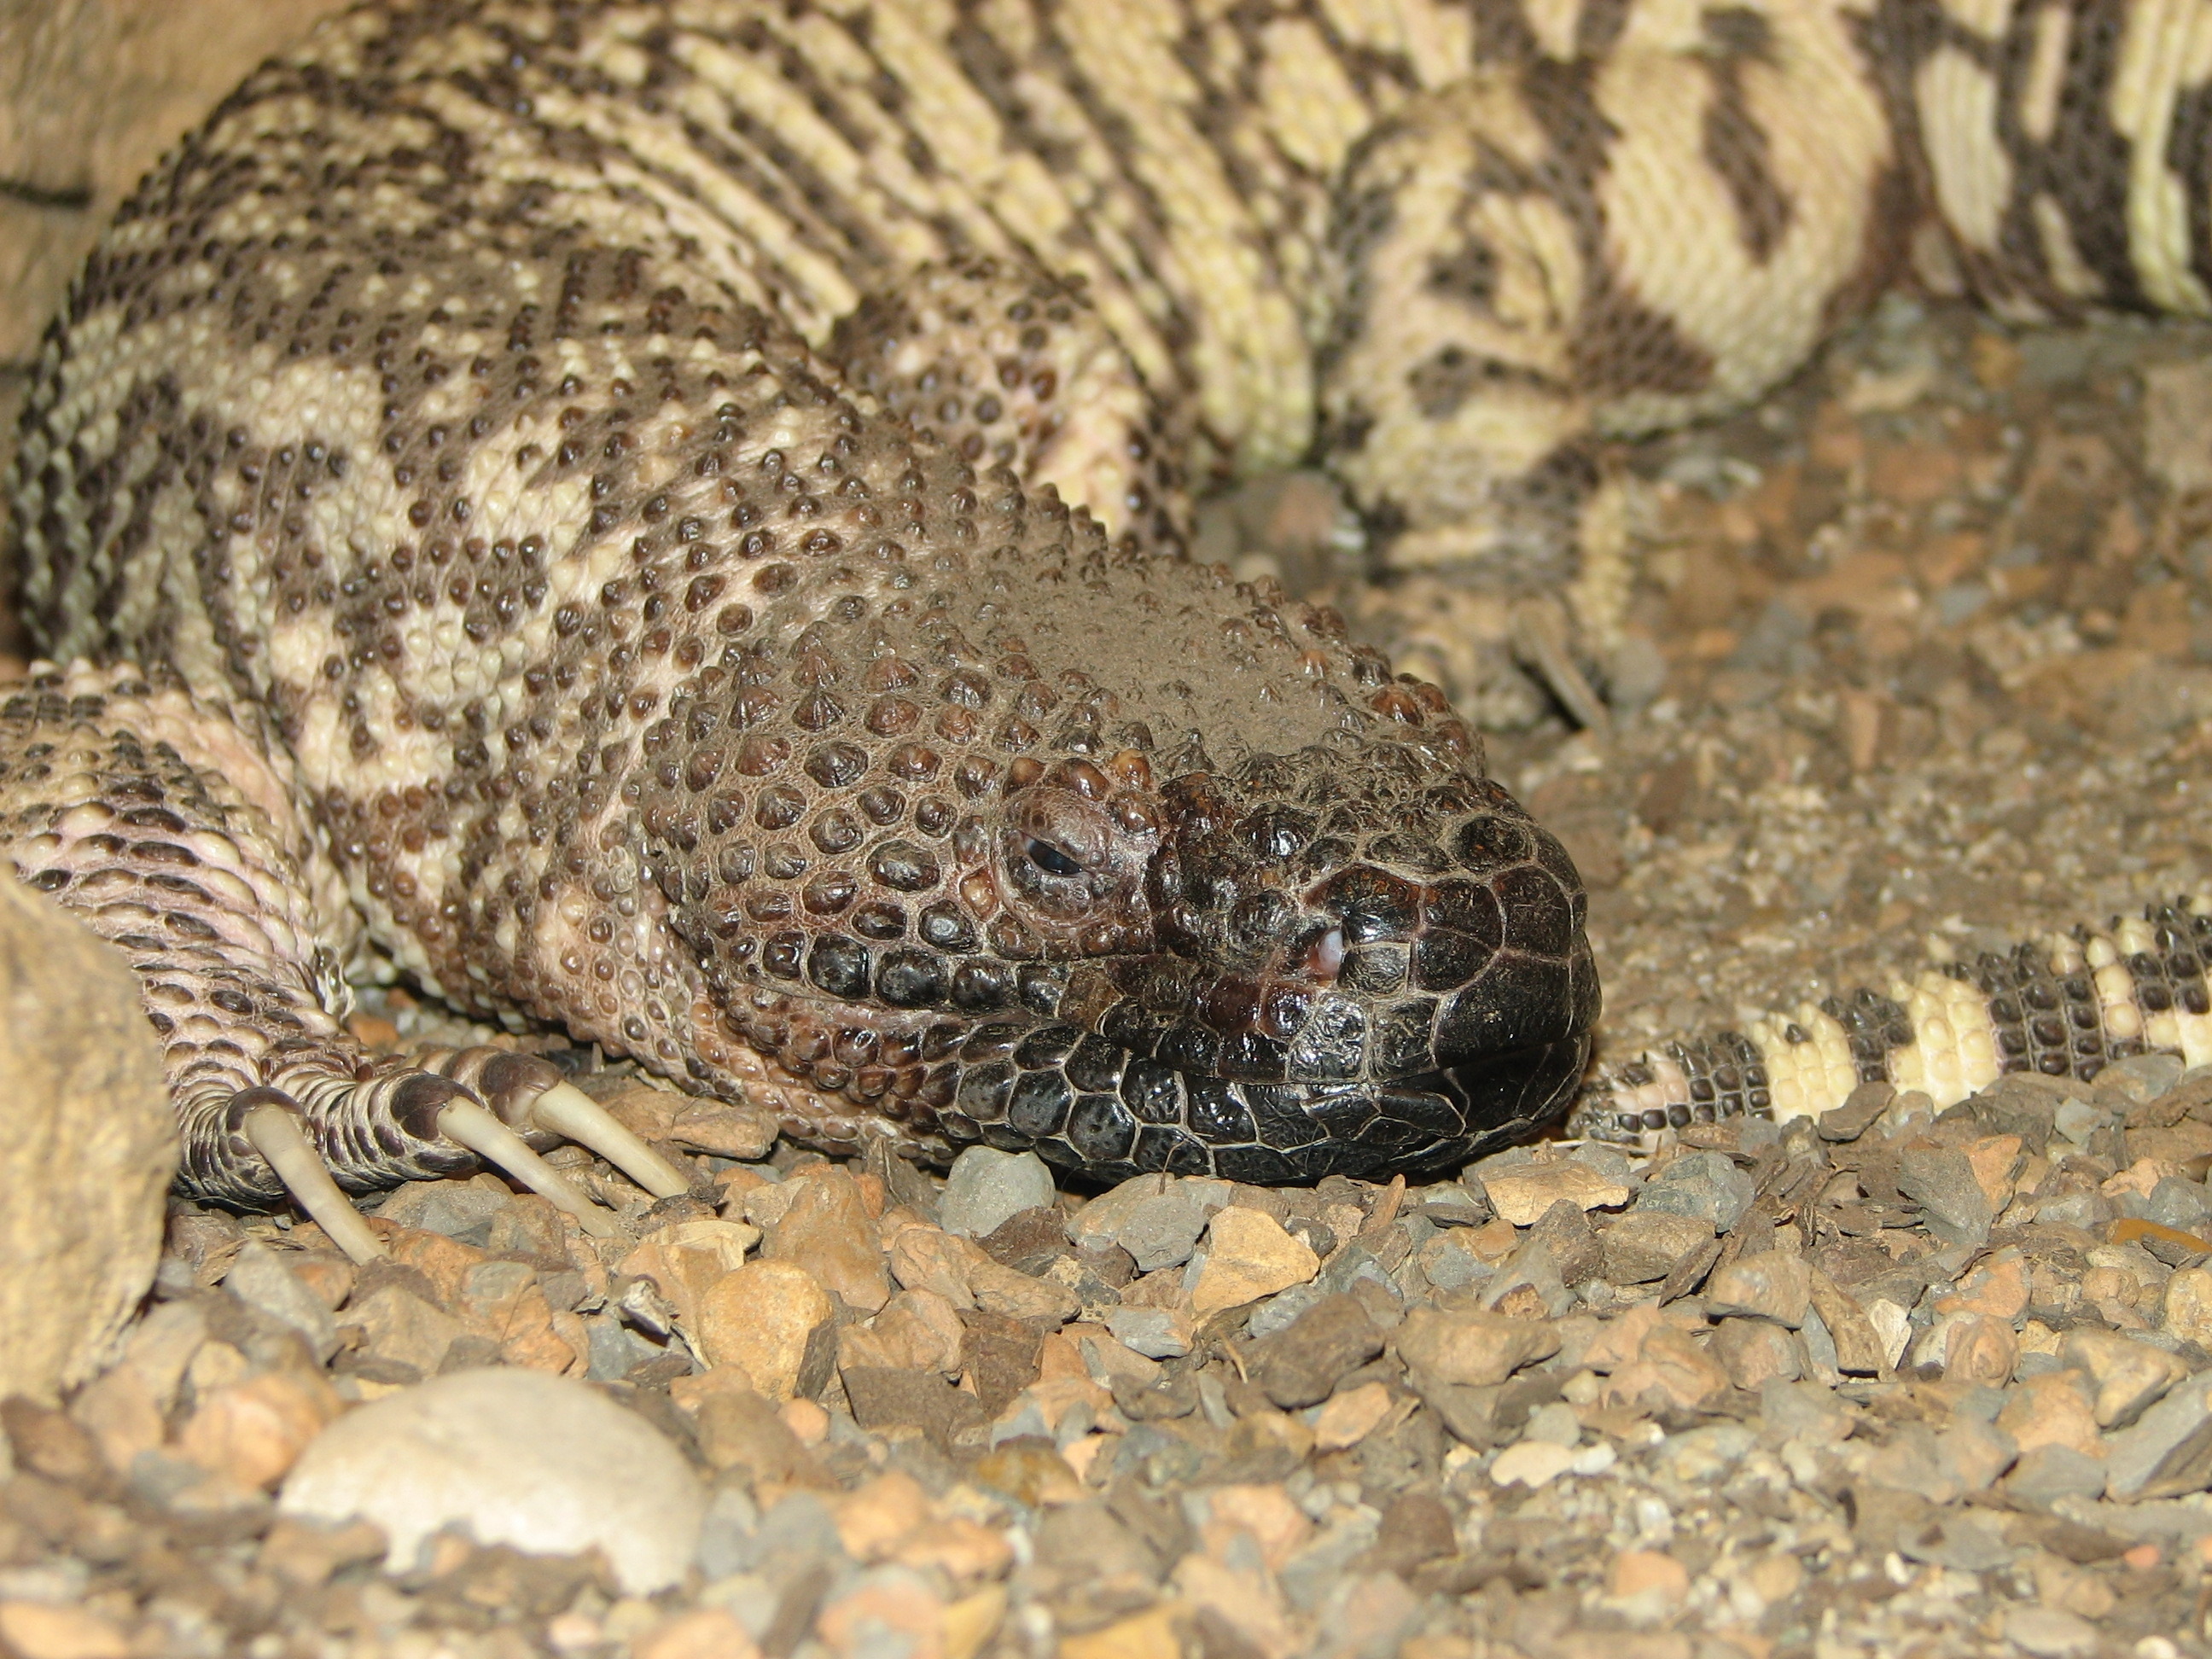 Todays Blog Will Be On The Mexican Beaded Lizard This Like Gila Monster Is Poisonous And One Of 2 Lizards In World